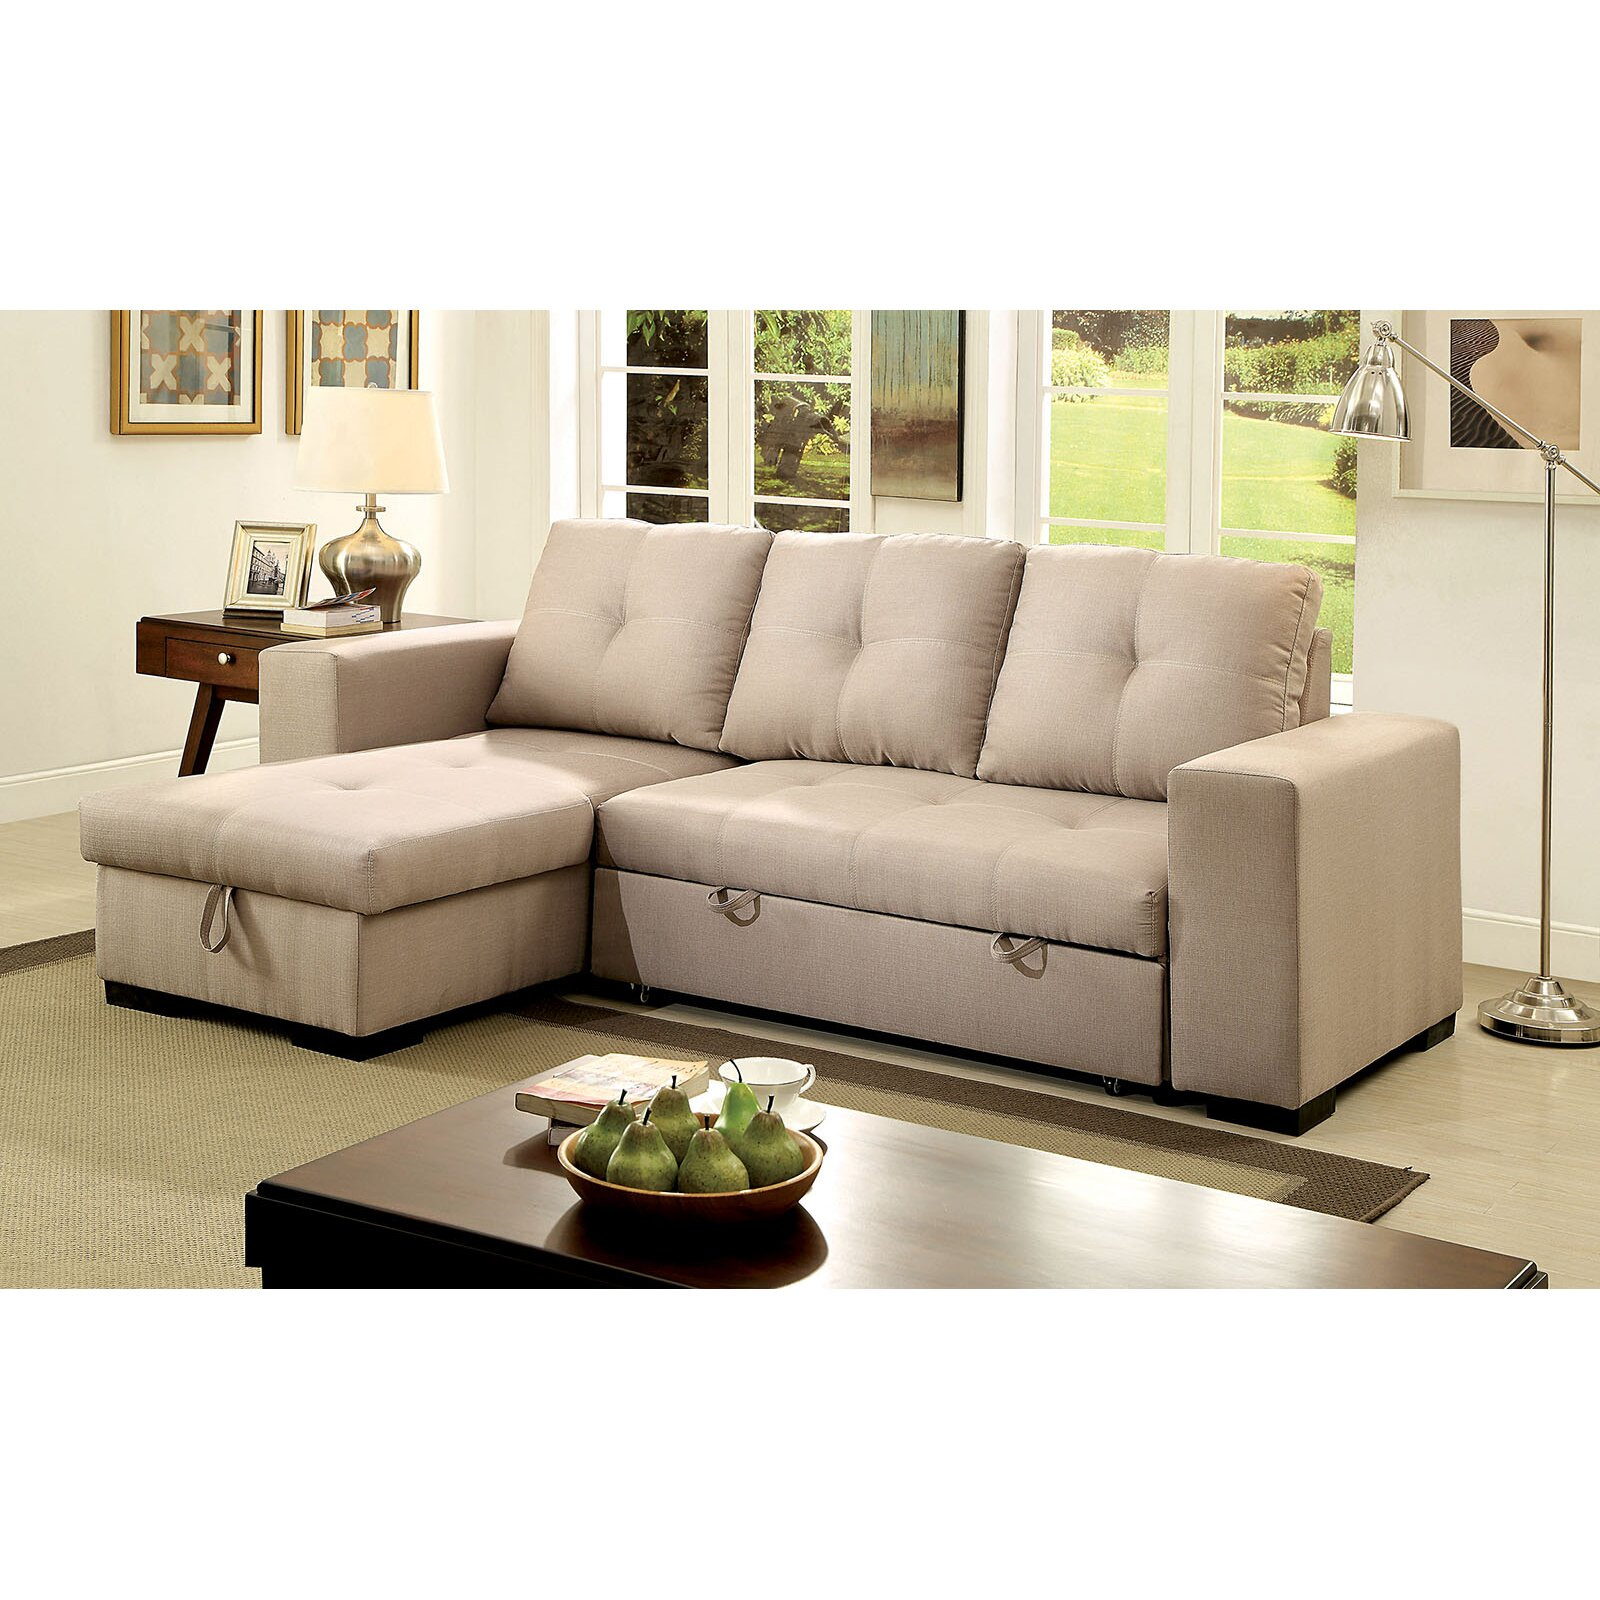 Small Sectional Sofa Clearance: A&J Homes Studio Reversible Chaise Sleeper Sectional